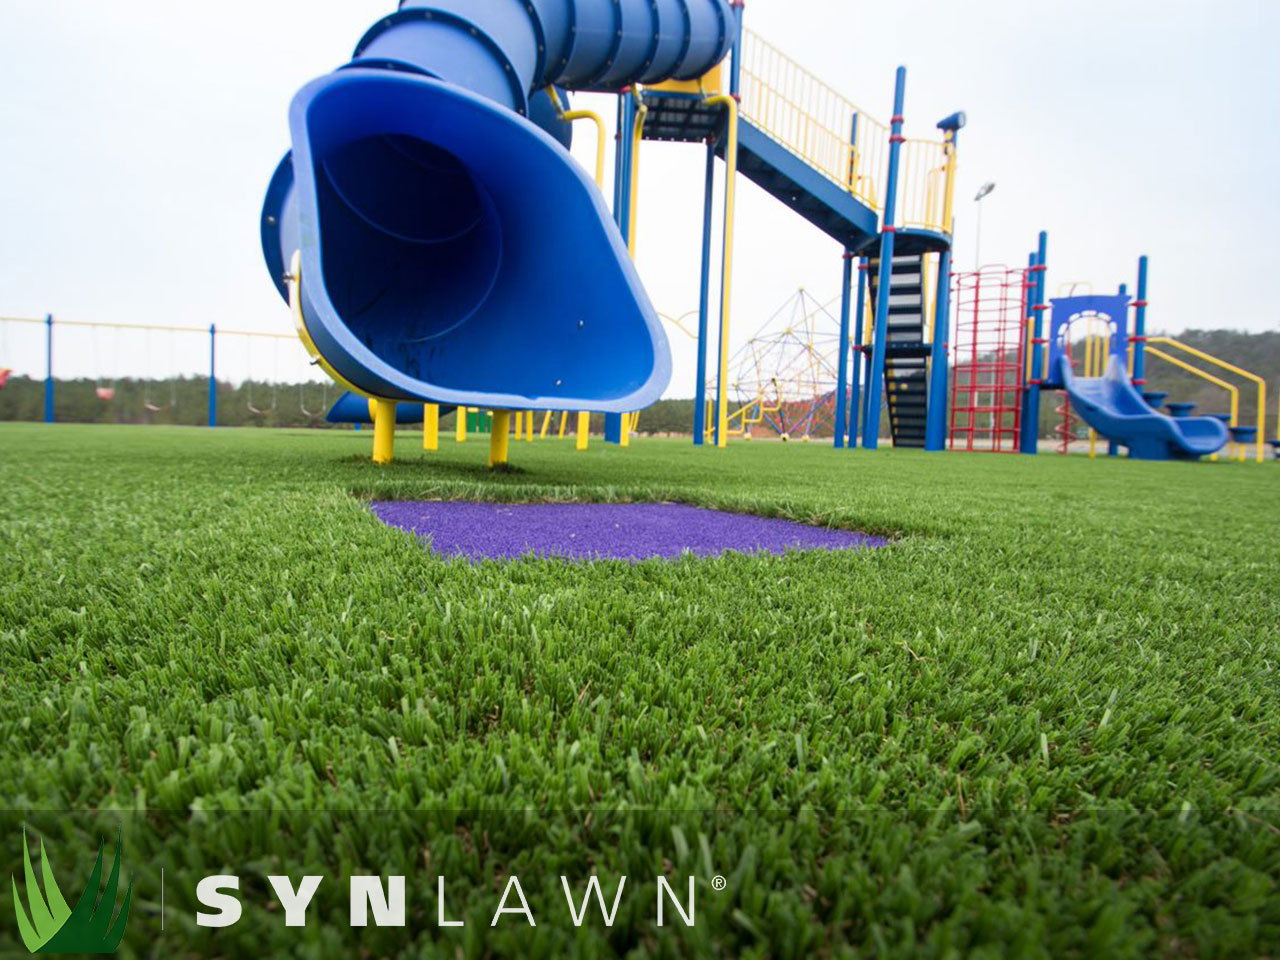 SYNLawn Playground Photo 23